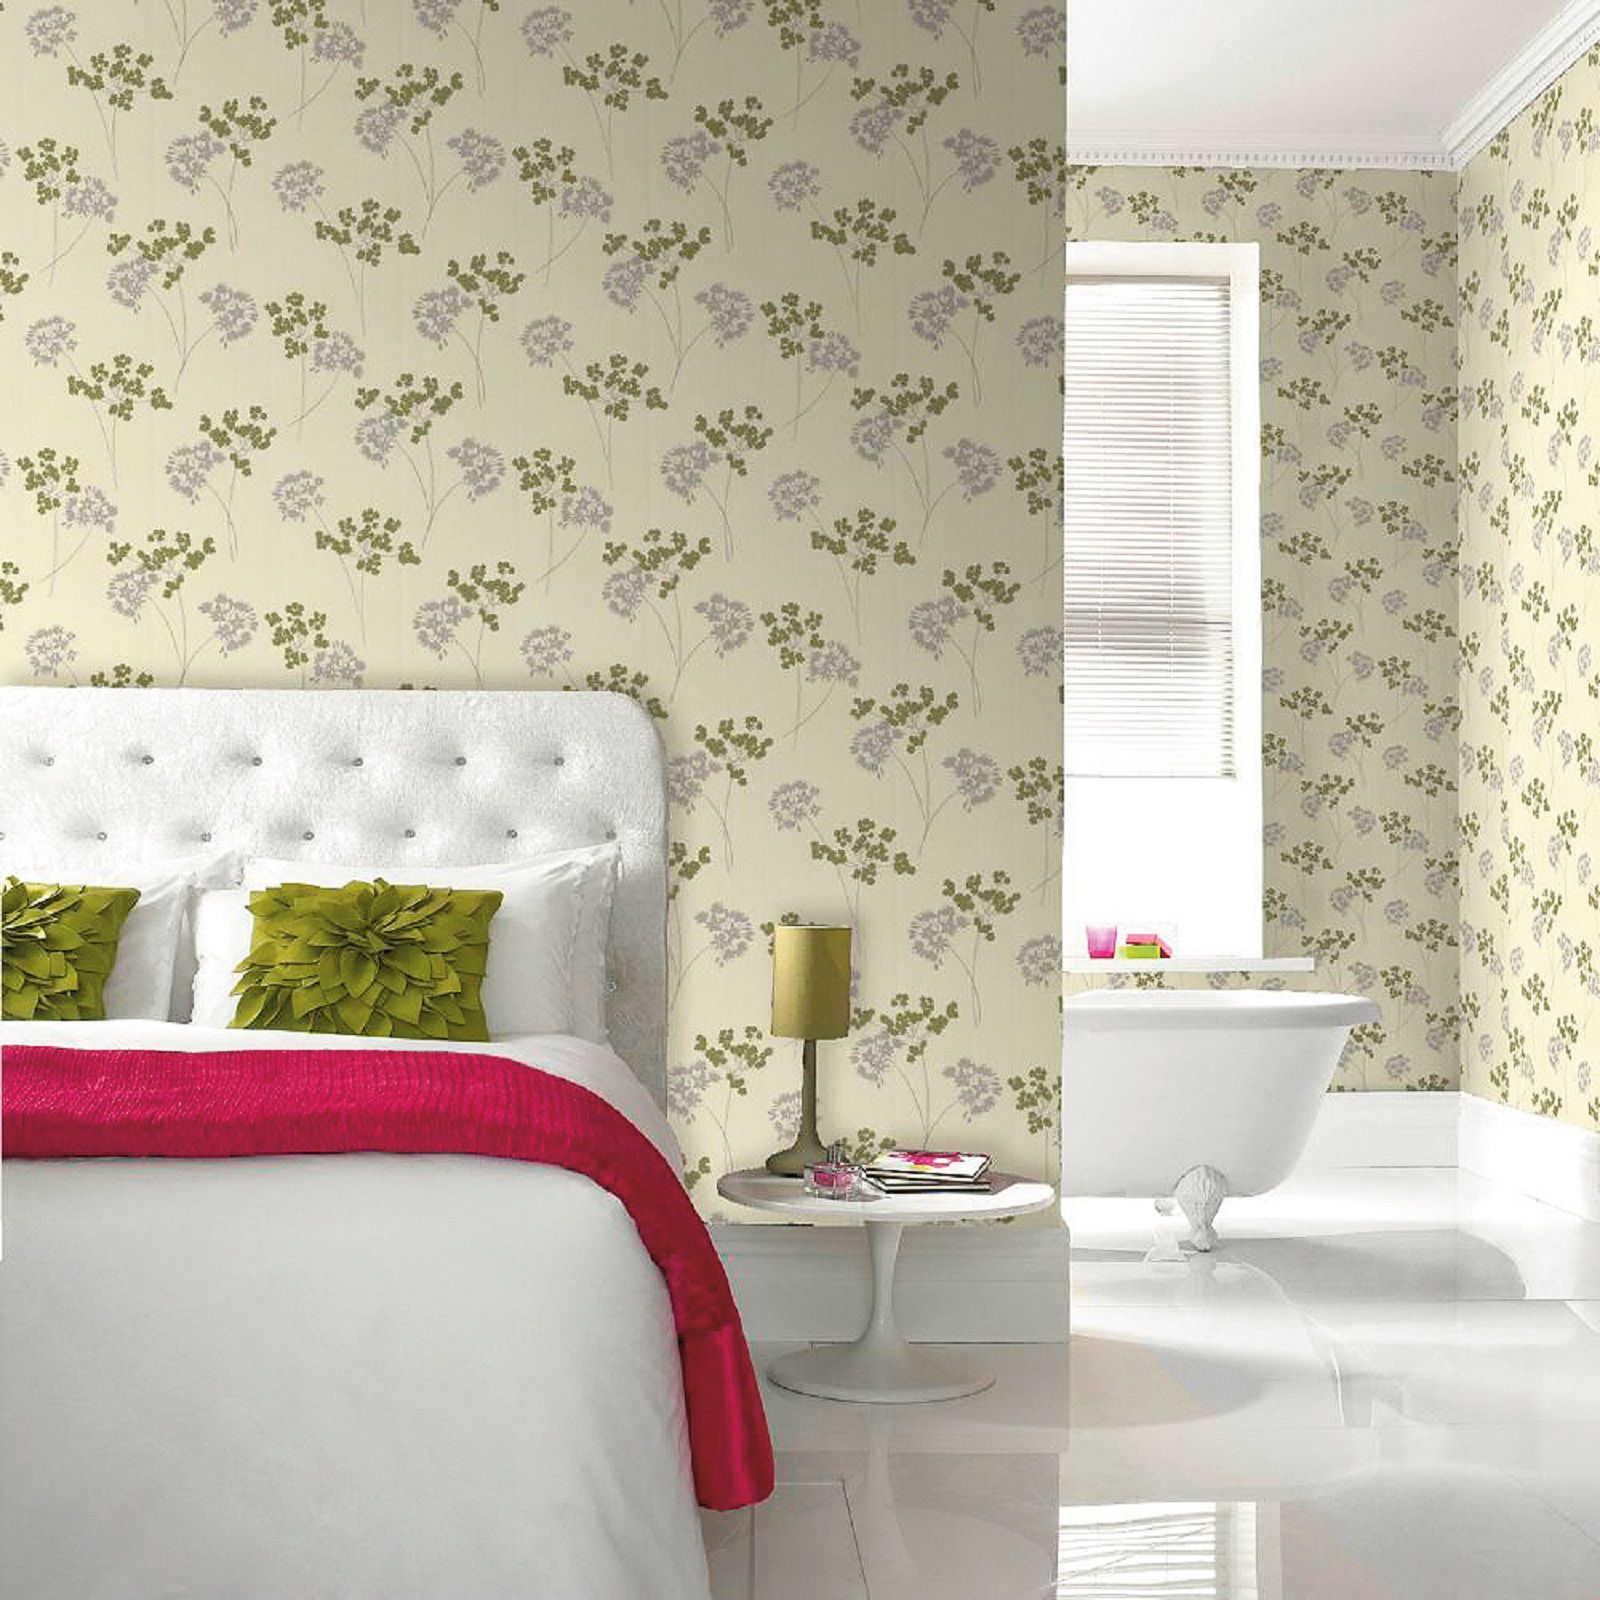 Superfresco Easy Paste the Wall Milly Apple Wallpaper at